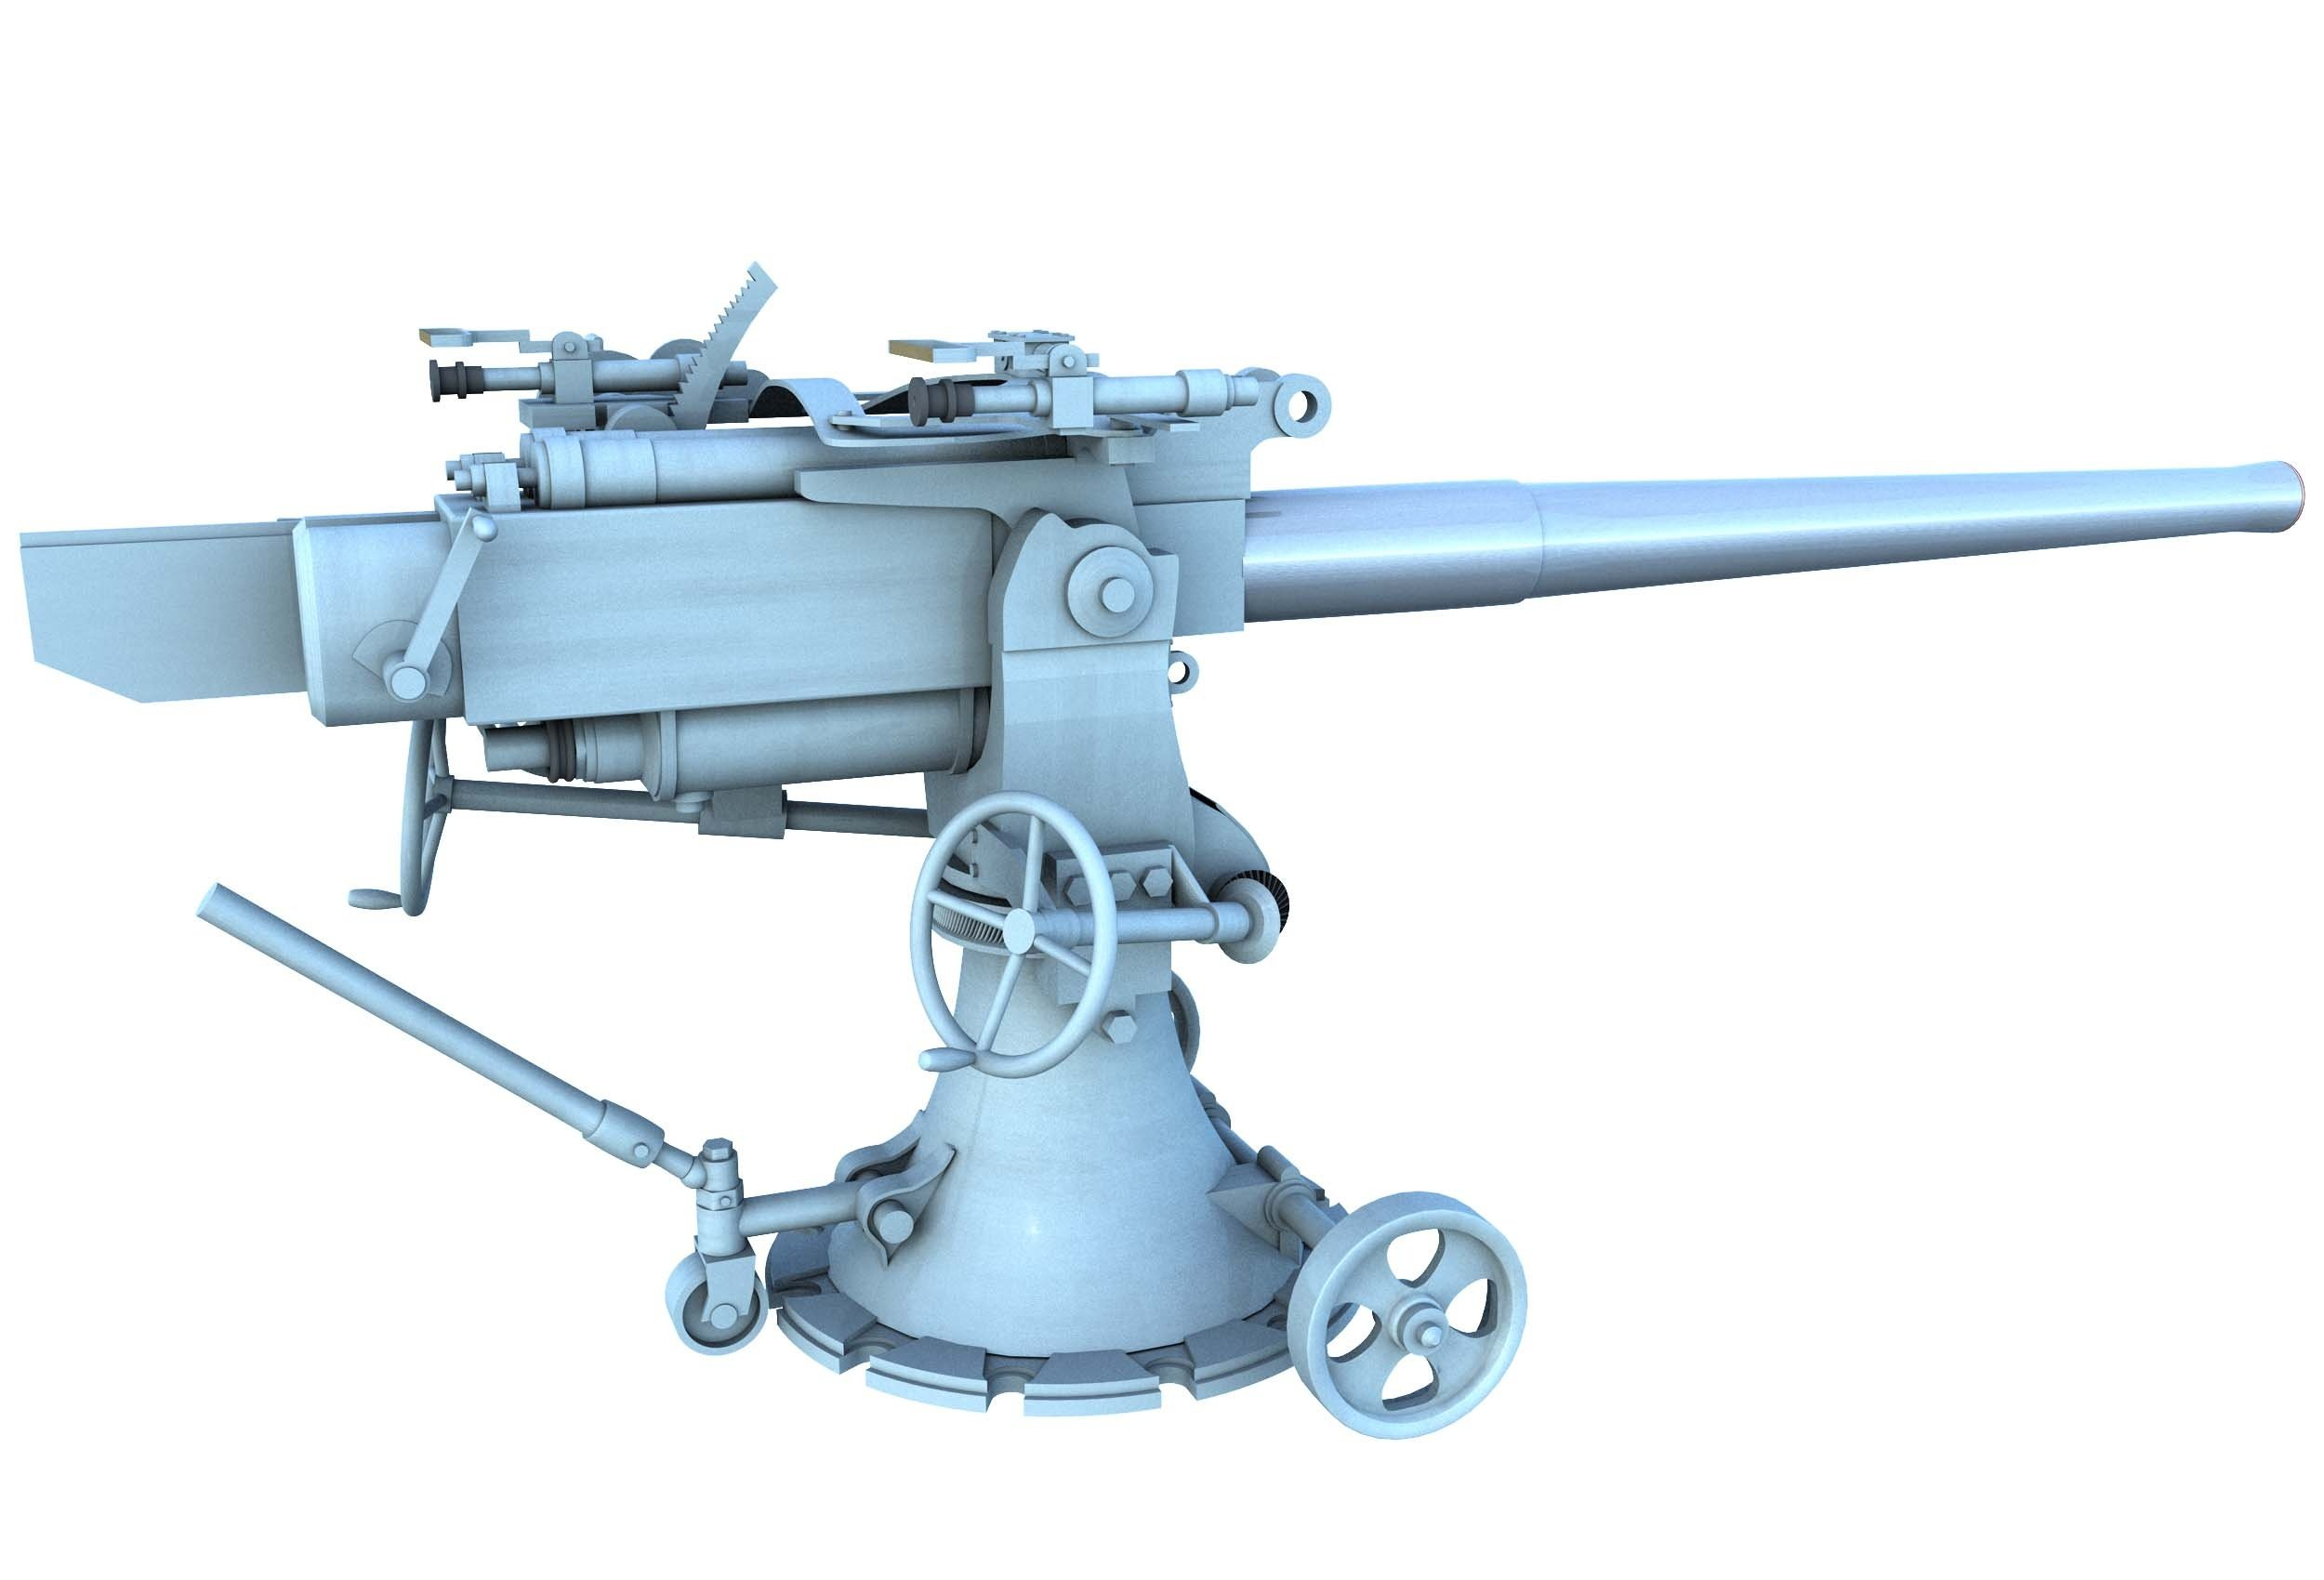 https://0901.nccdn.net/4_2/000/000/048/83f/CK58-Individual-7cm-AT-Gun-Right-Side-2500x1700.jpg